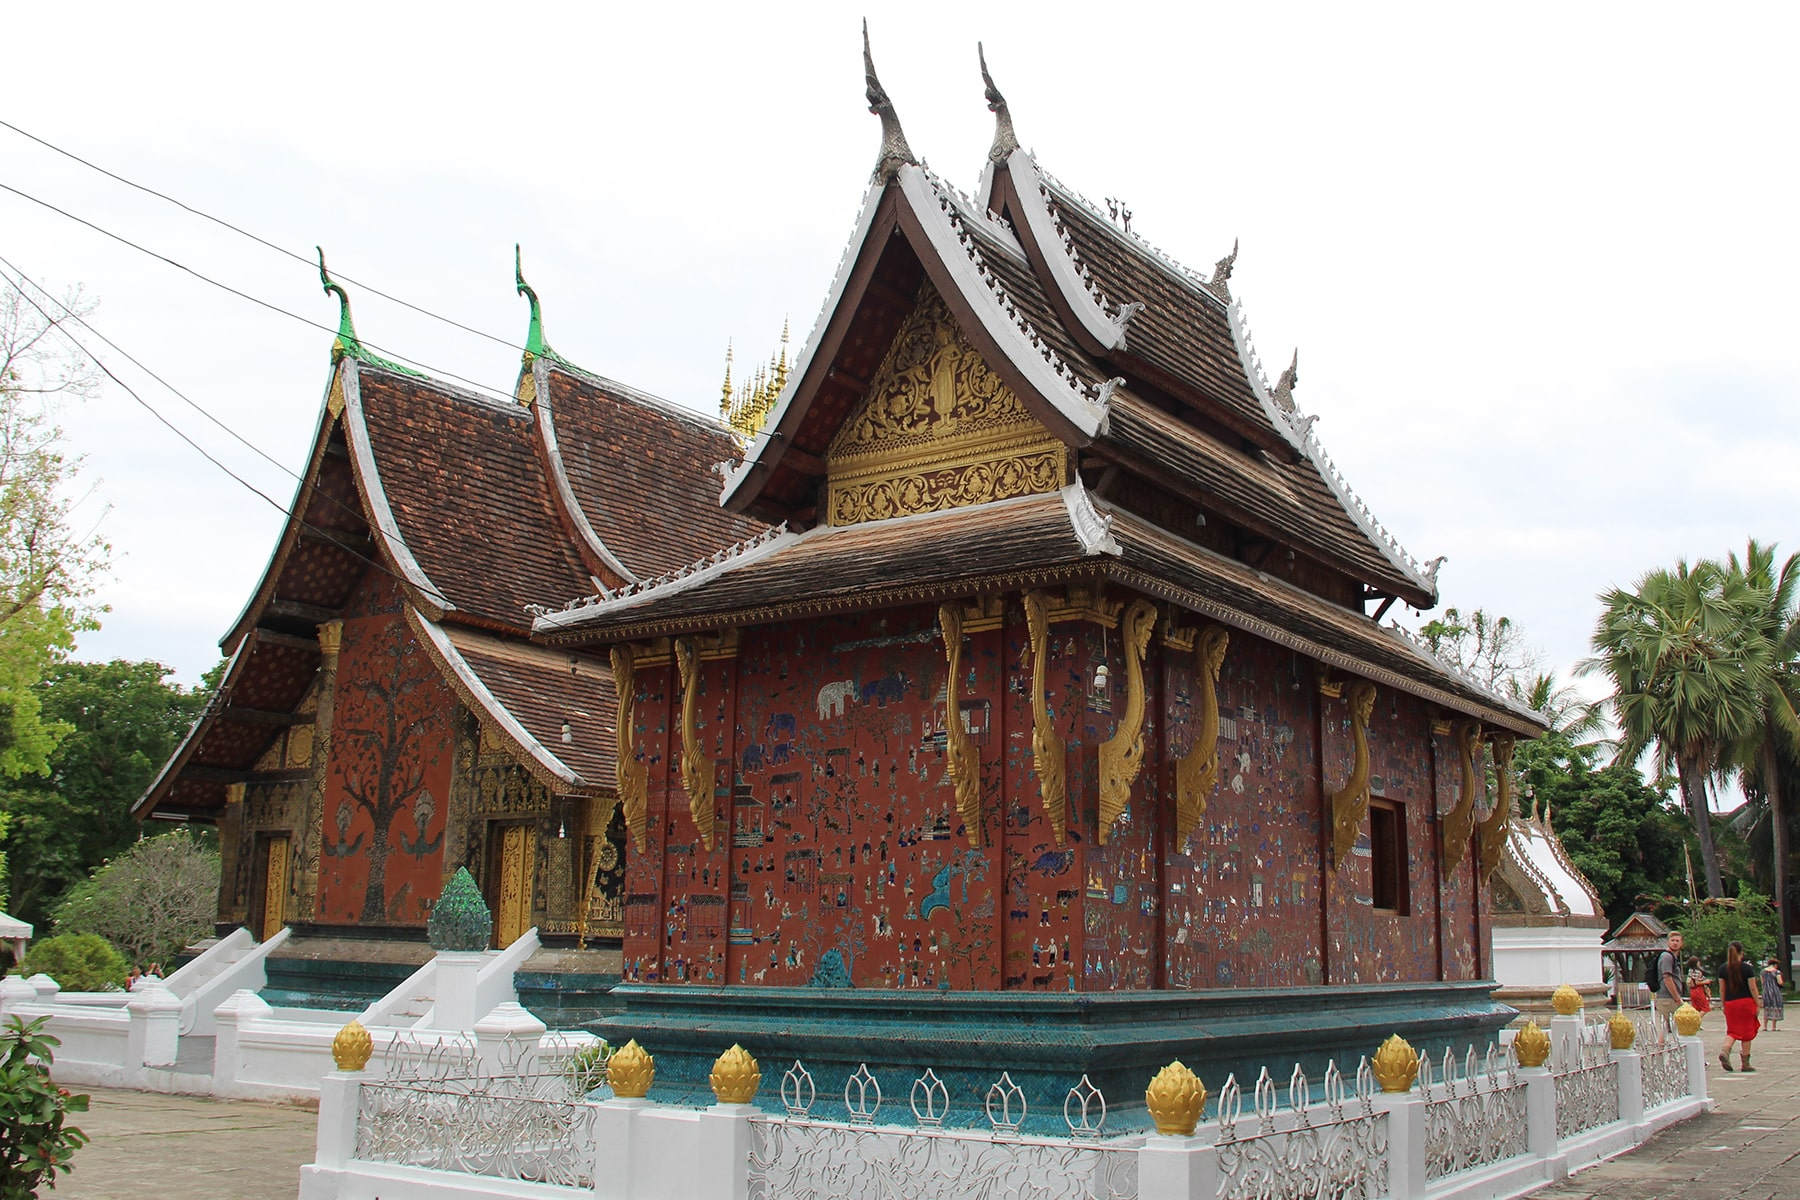 Two decorated chapels in the Wat Xieng Thong, Laos